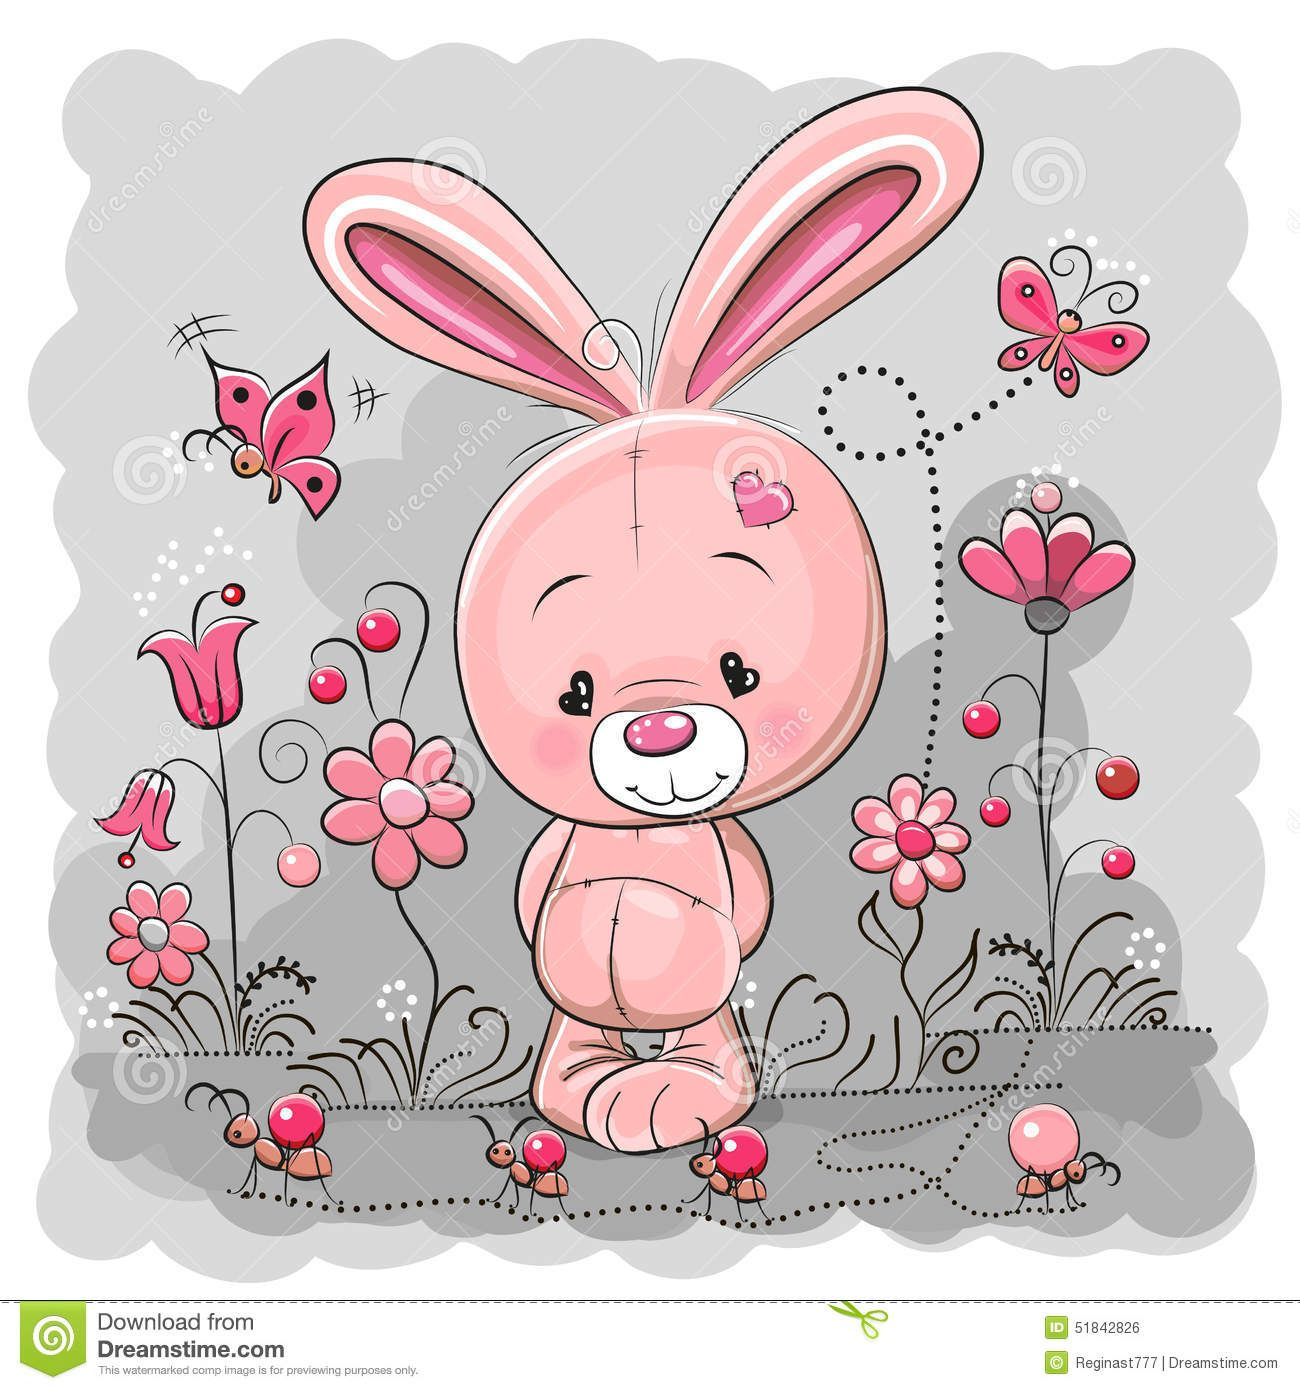 Illustration About Cute Cartoon Rabbit On A Meadow With Flowers